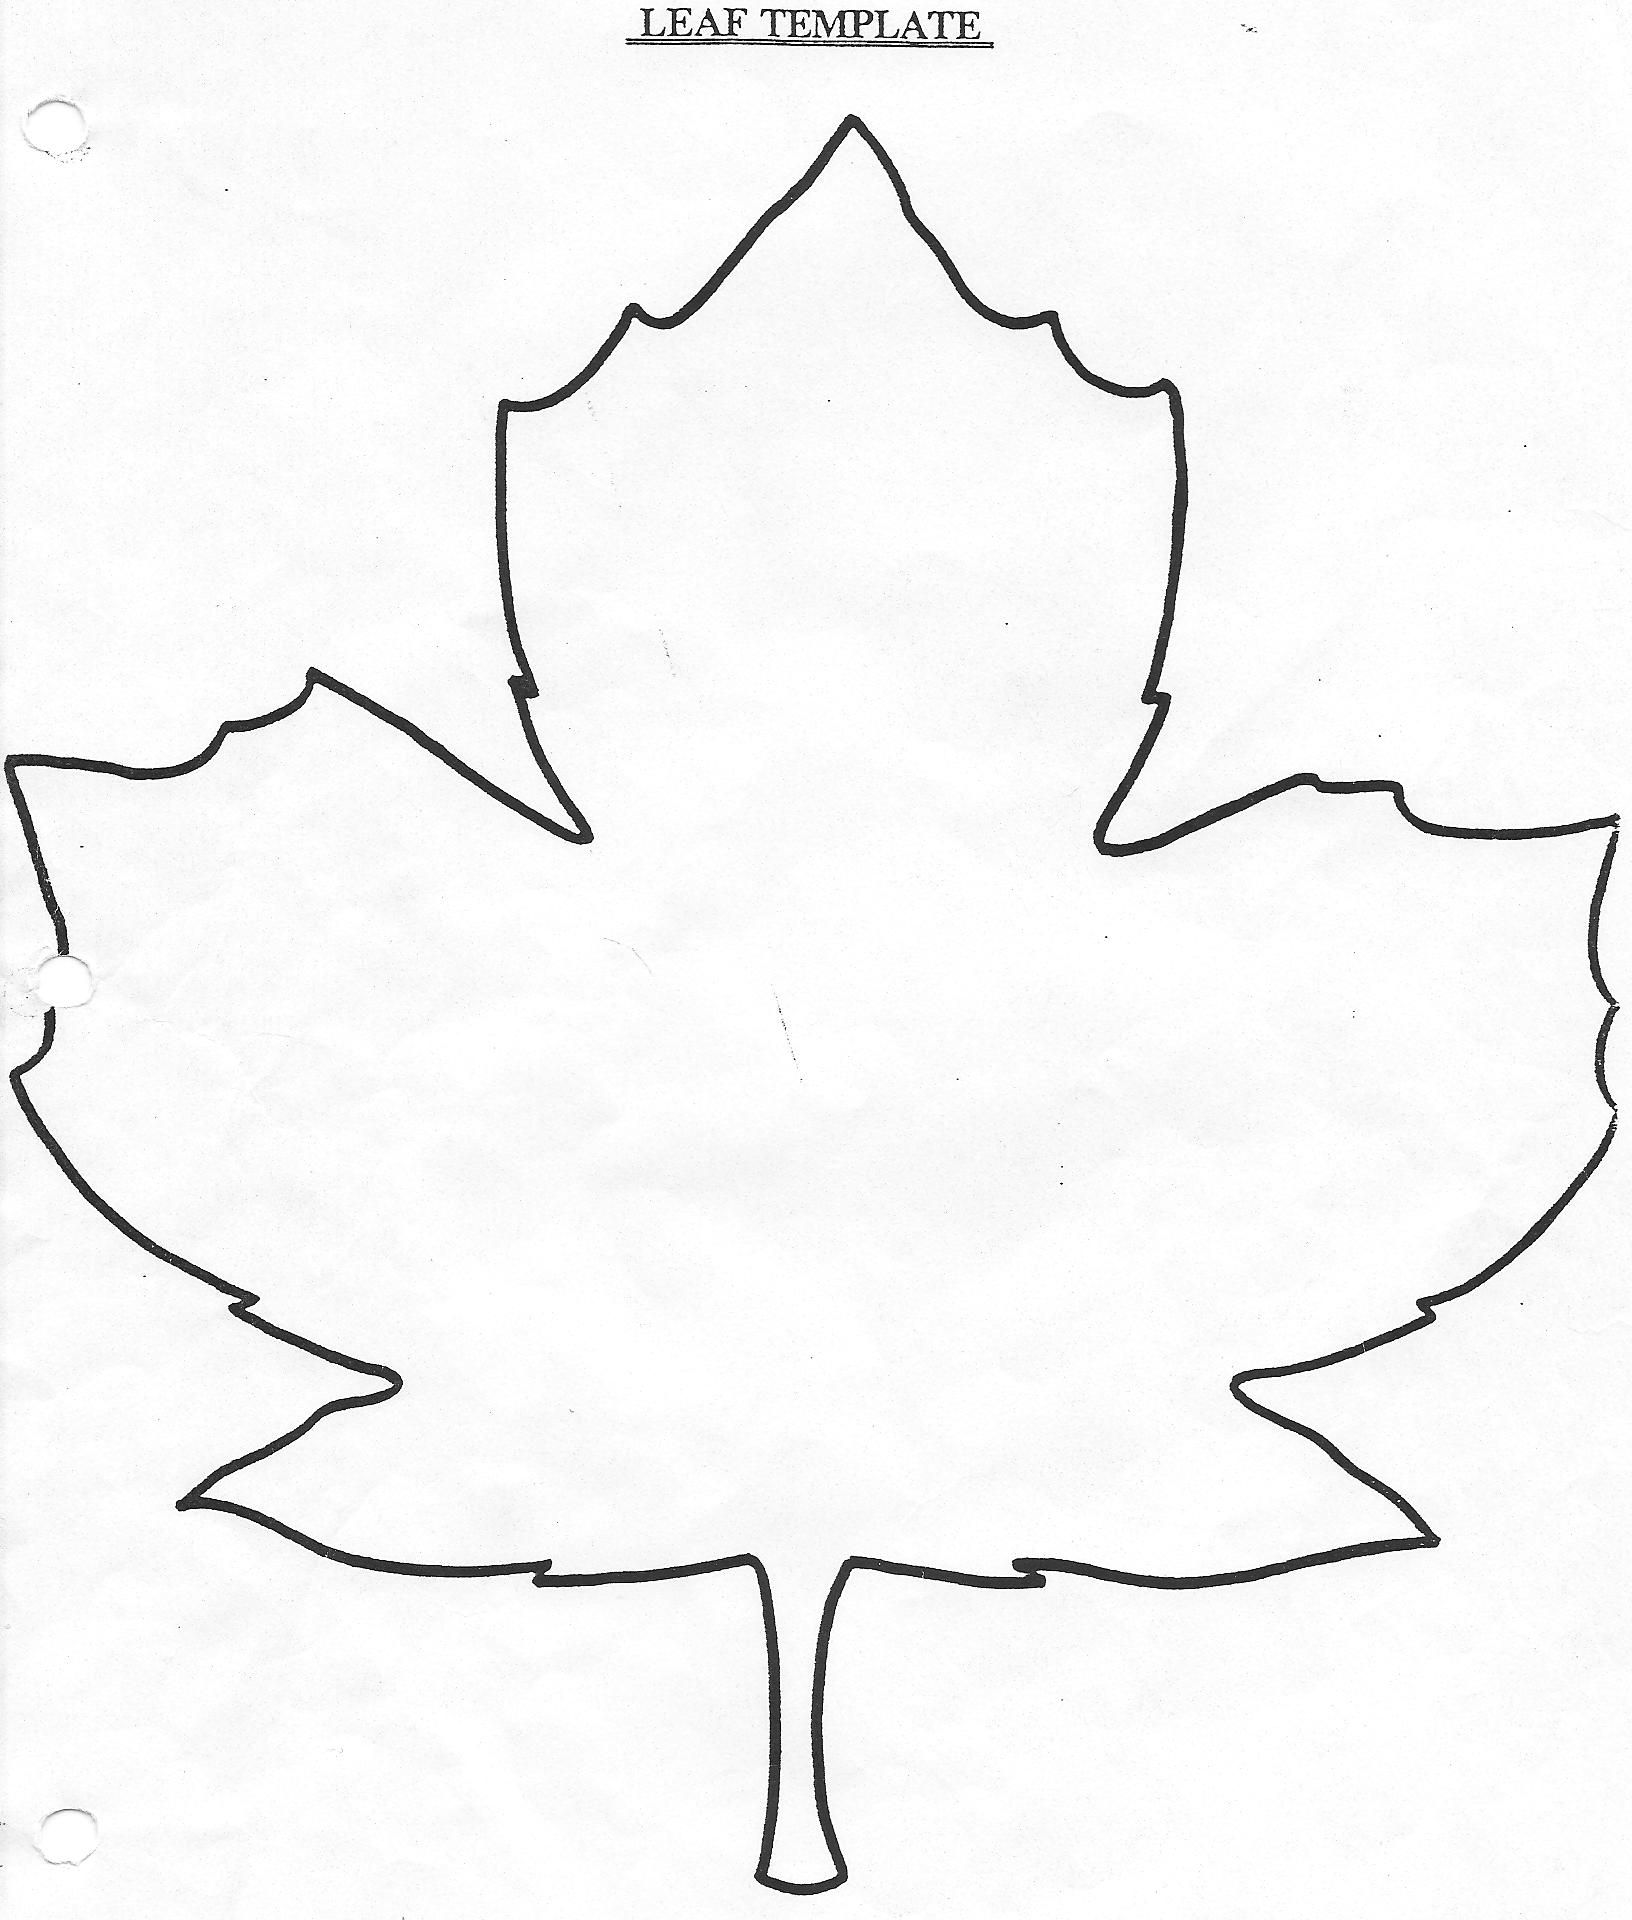 large coloring pages of leaves - photo#6